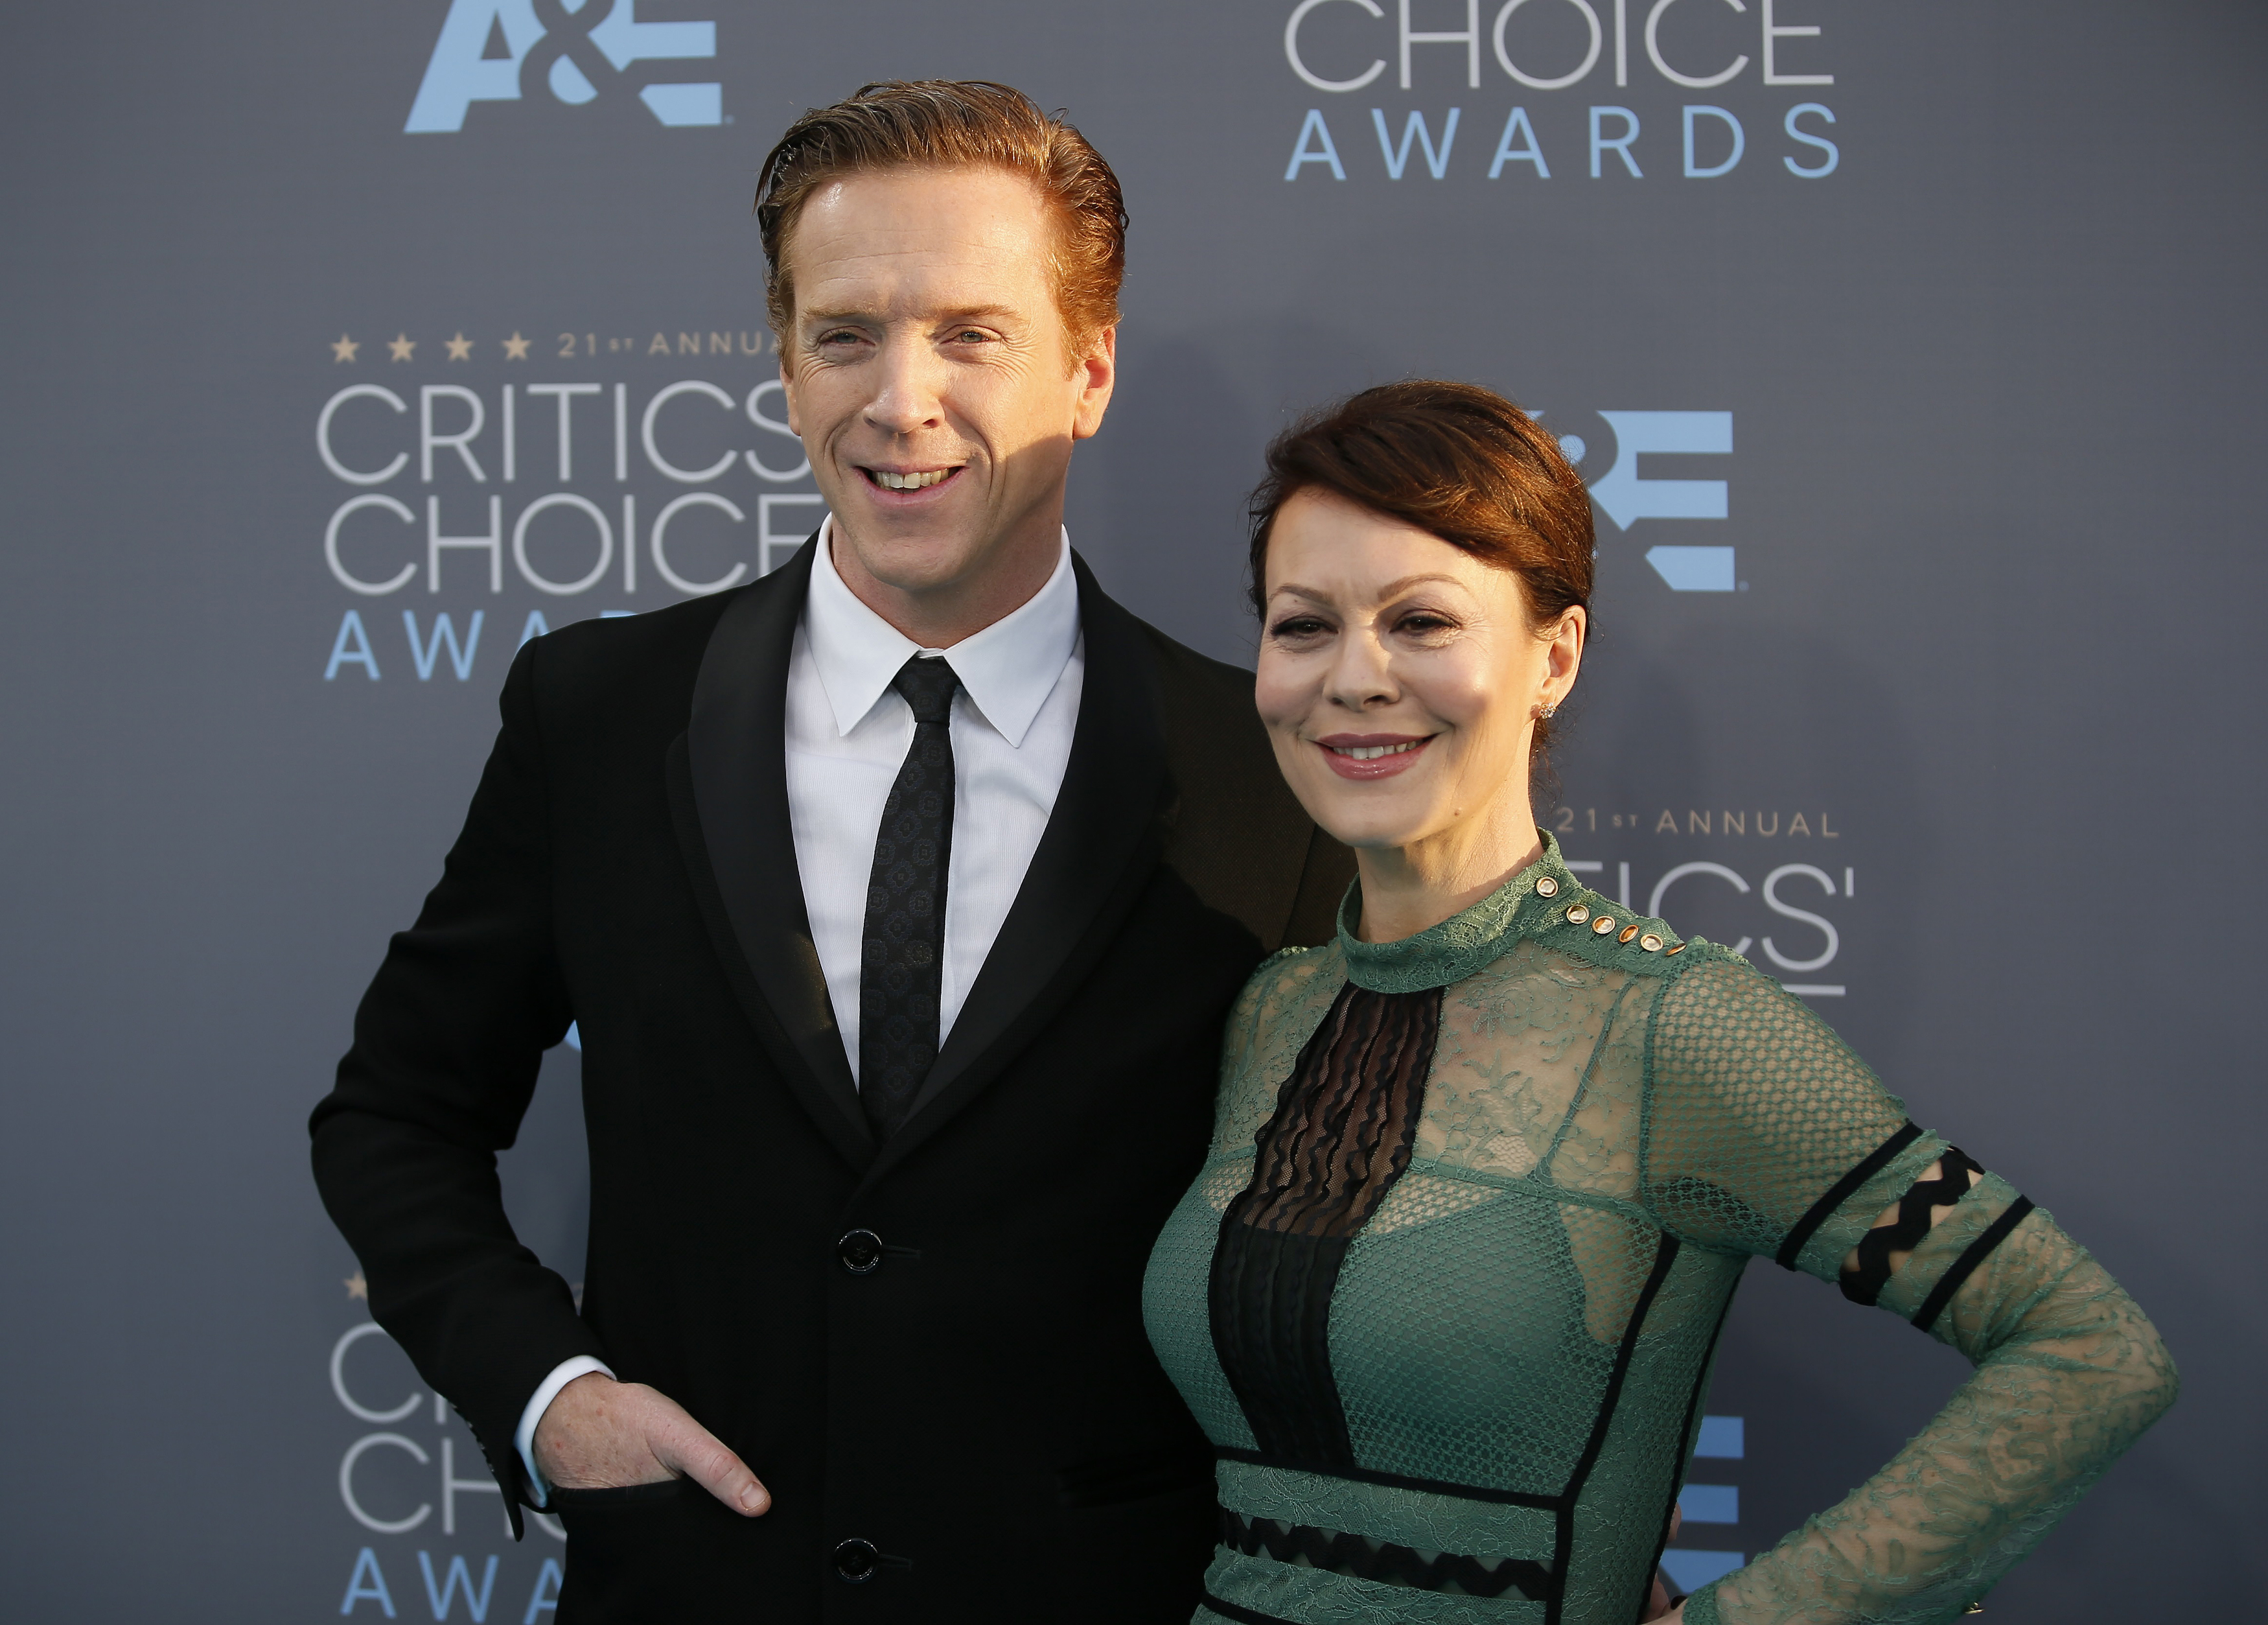 Actor Damian Lewis and his wife actress Helen McCrory arrive at the 21st Annual Critics' Choice Awards in Santa Monica, California January 17, 2016.  REUTERS/Danny Moloshok